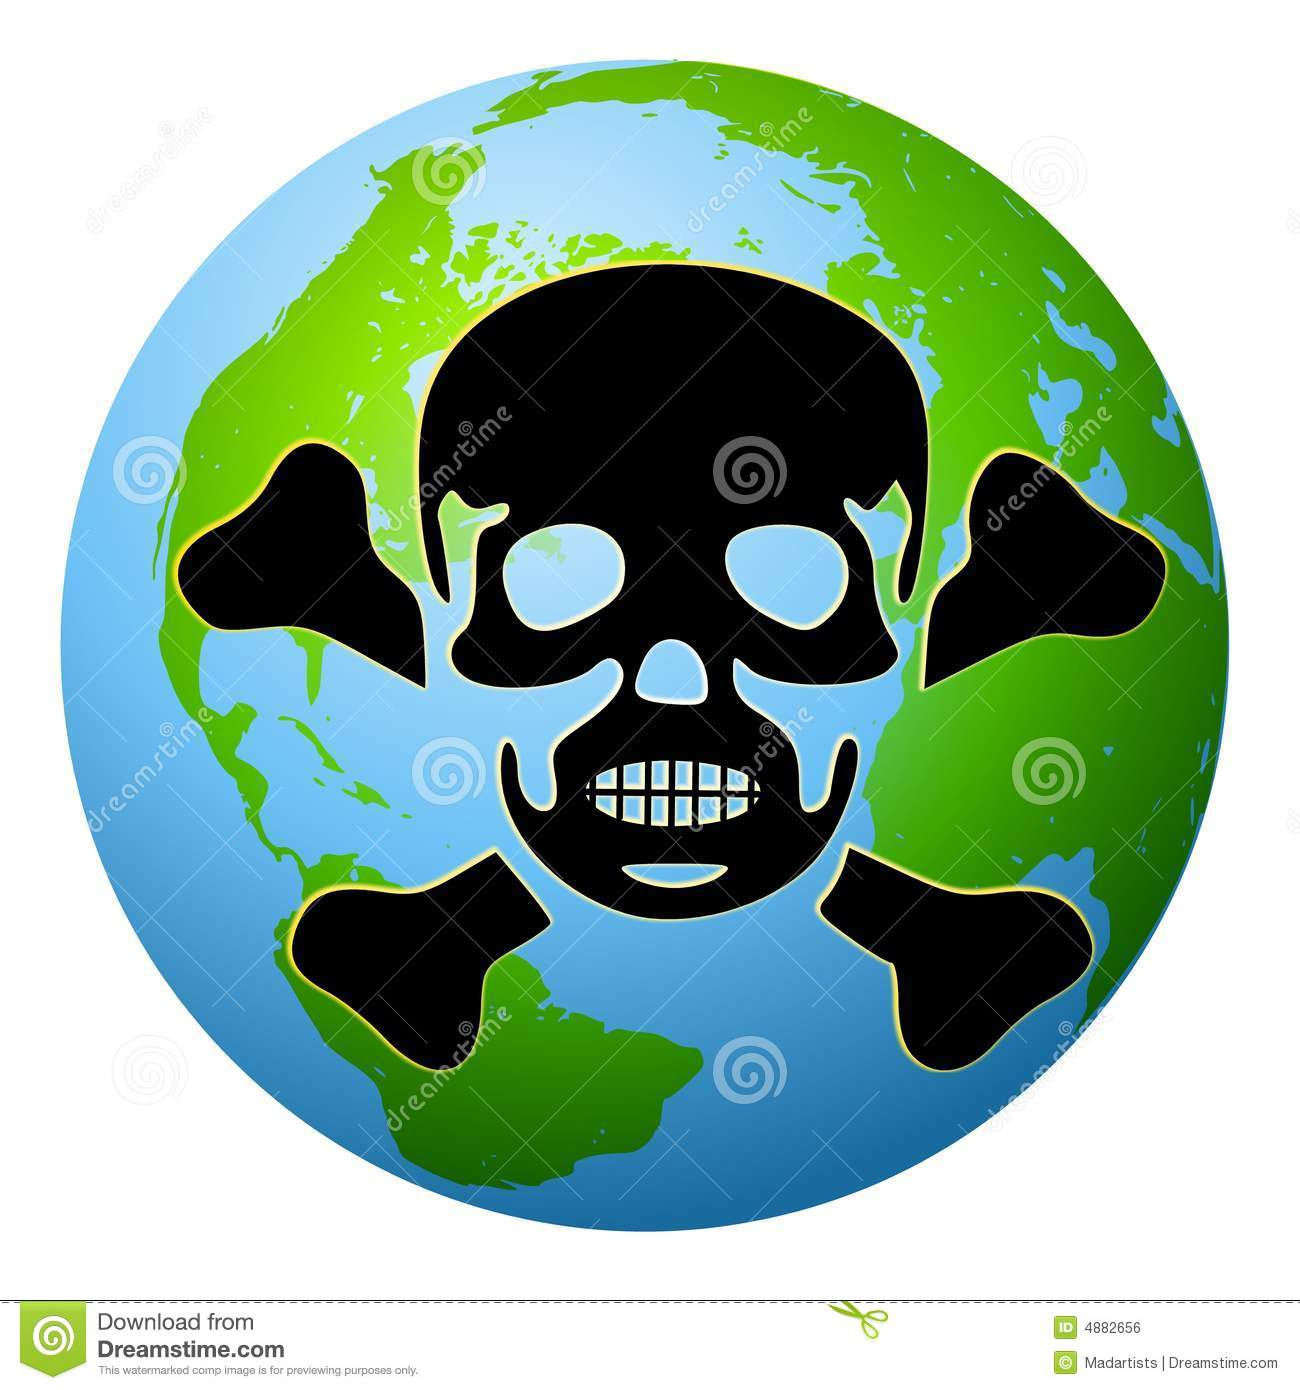 toxic earth syndrome stock illustration image of black world globe clipart free world globe clipart free